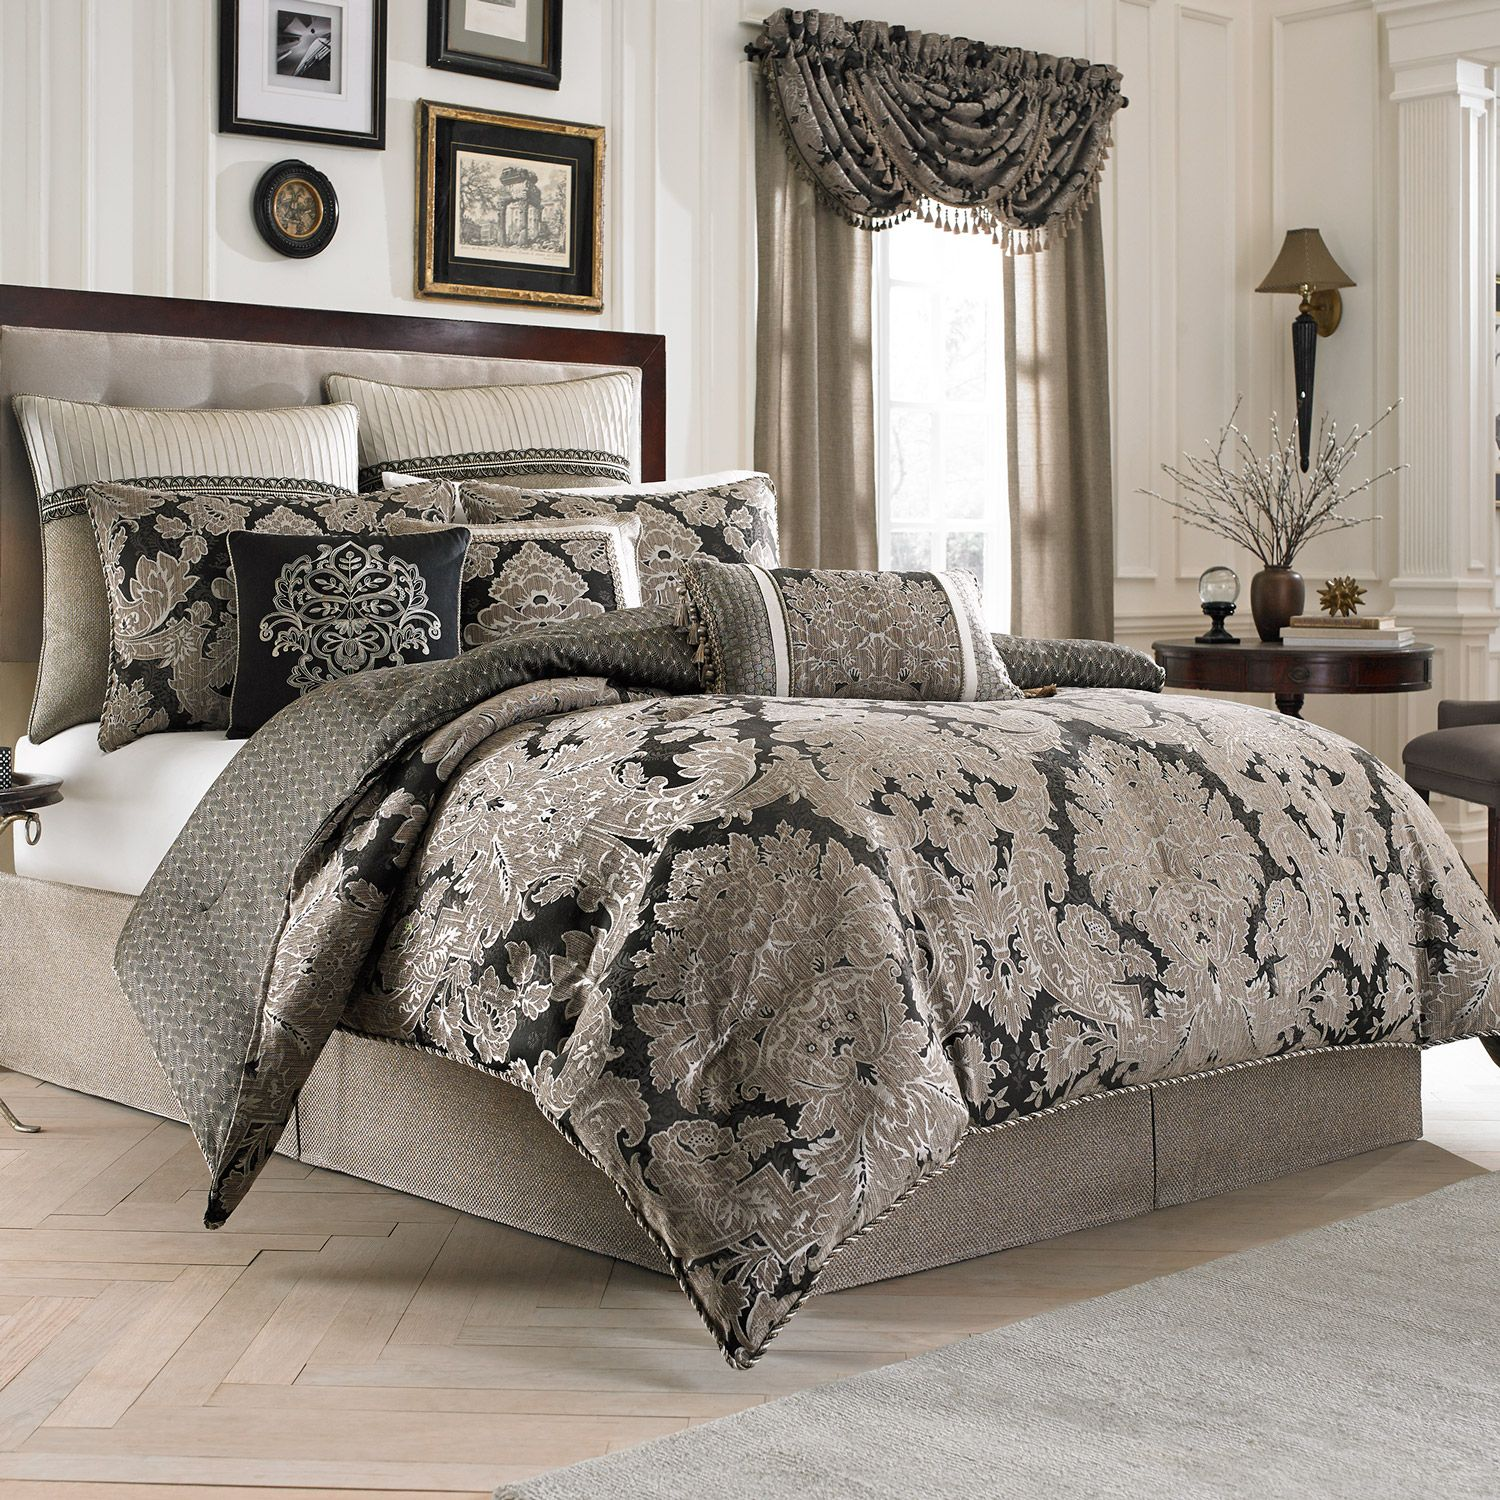 California King Bed forter Sets Bringing Refinement in